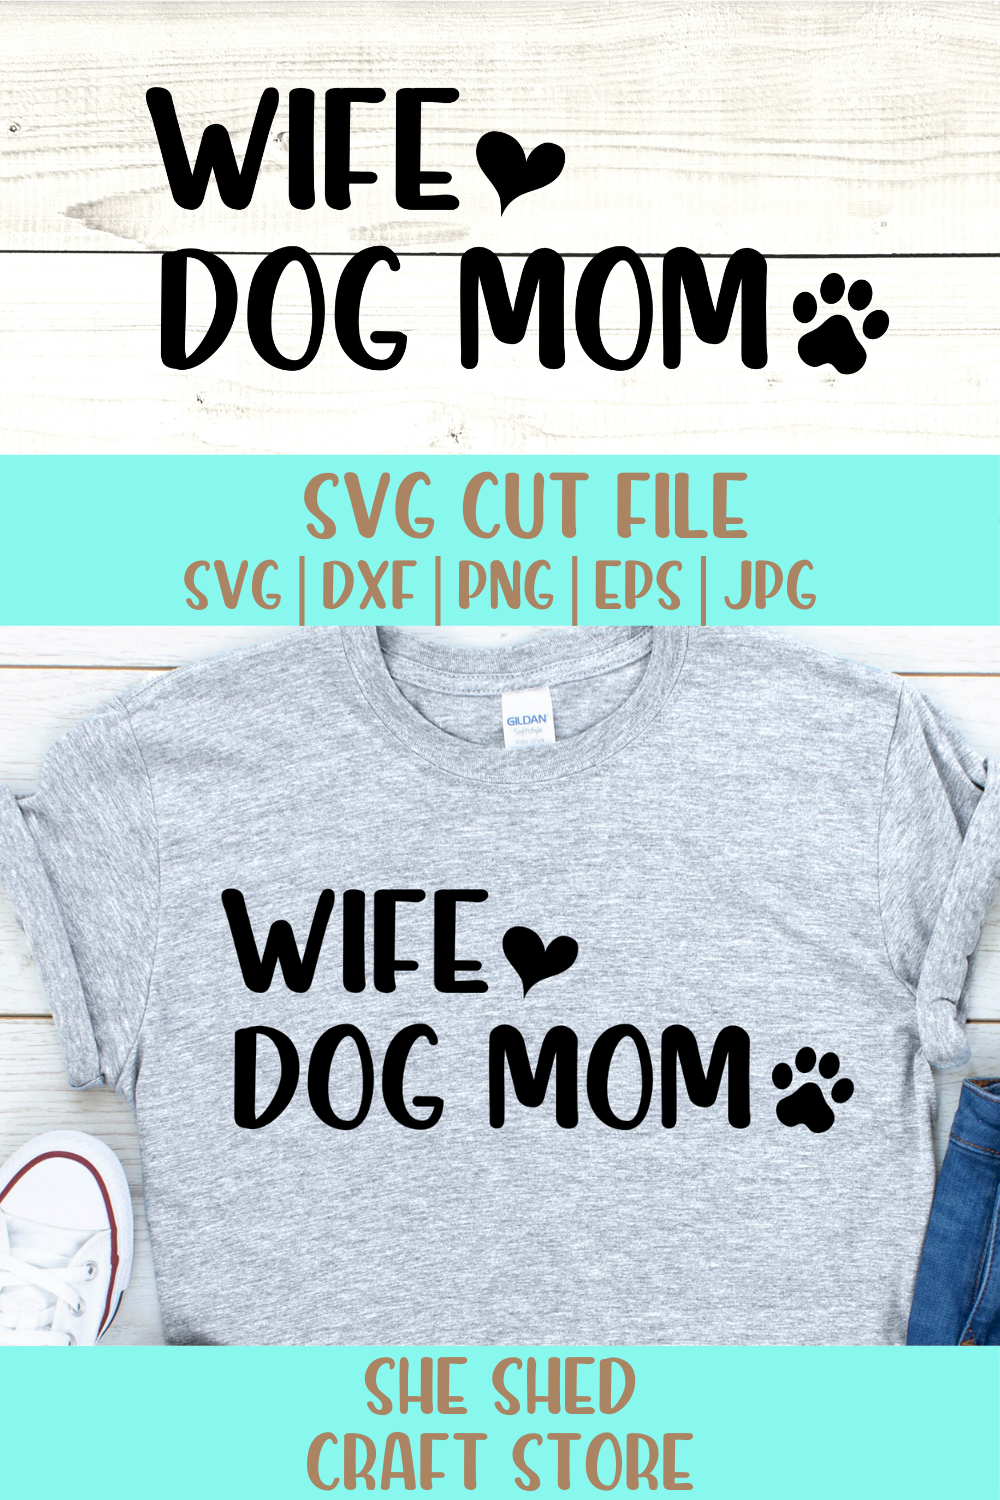 Pin on She Shed Craft Store SVG Files